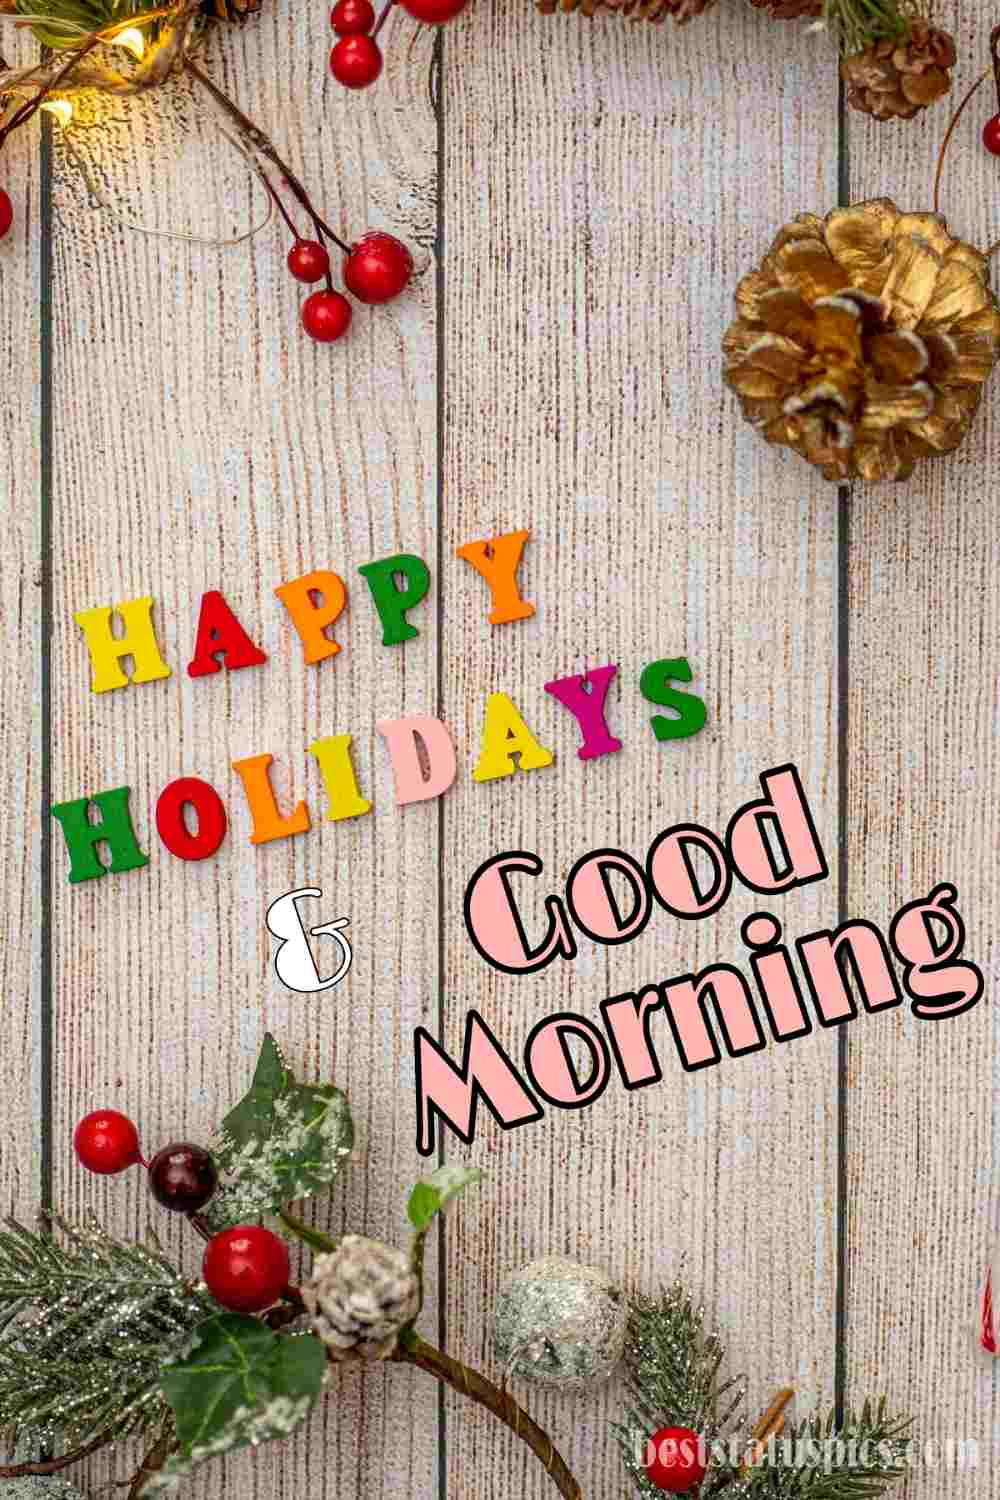 Cute Good morning happy holidays 2022 wishes, greeting cards for friends